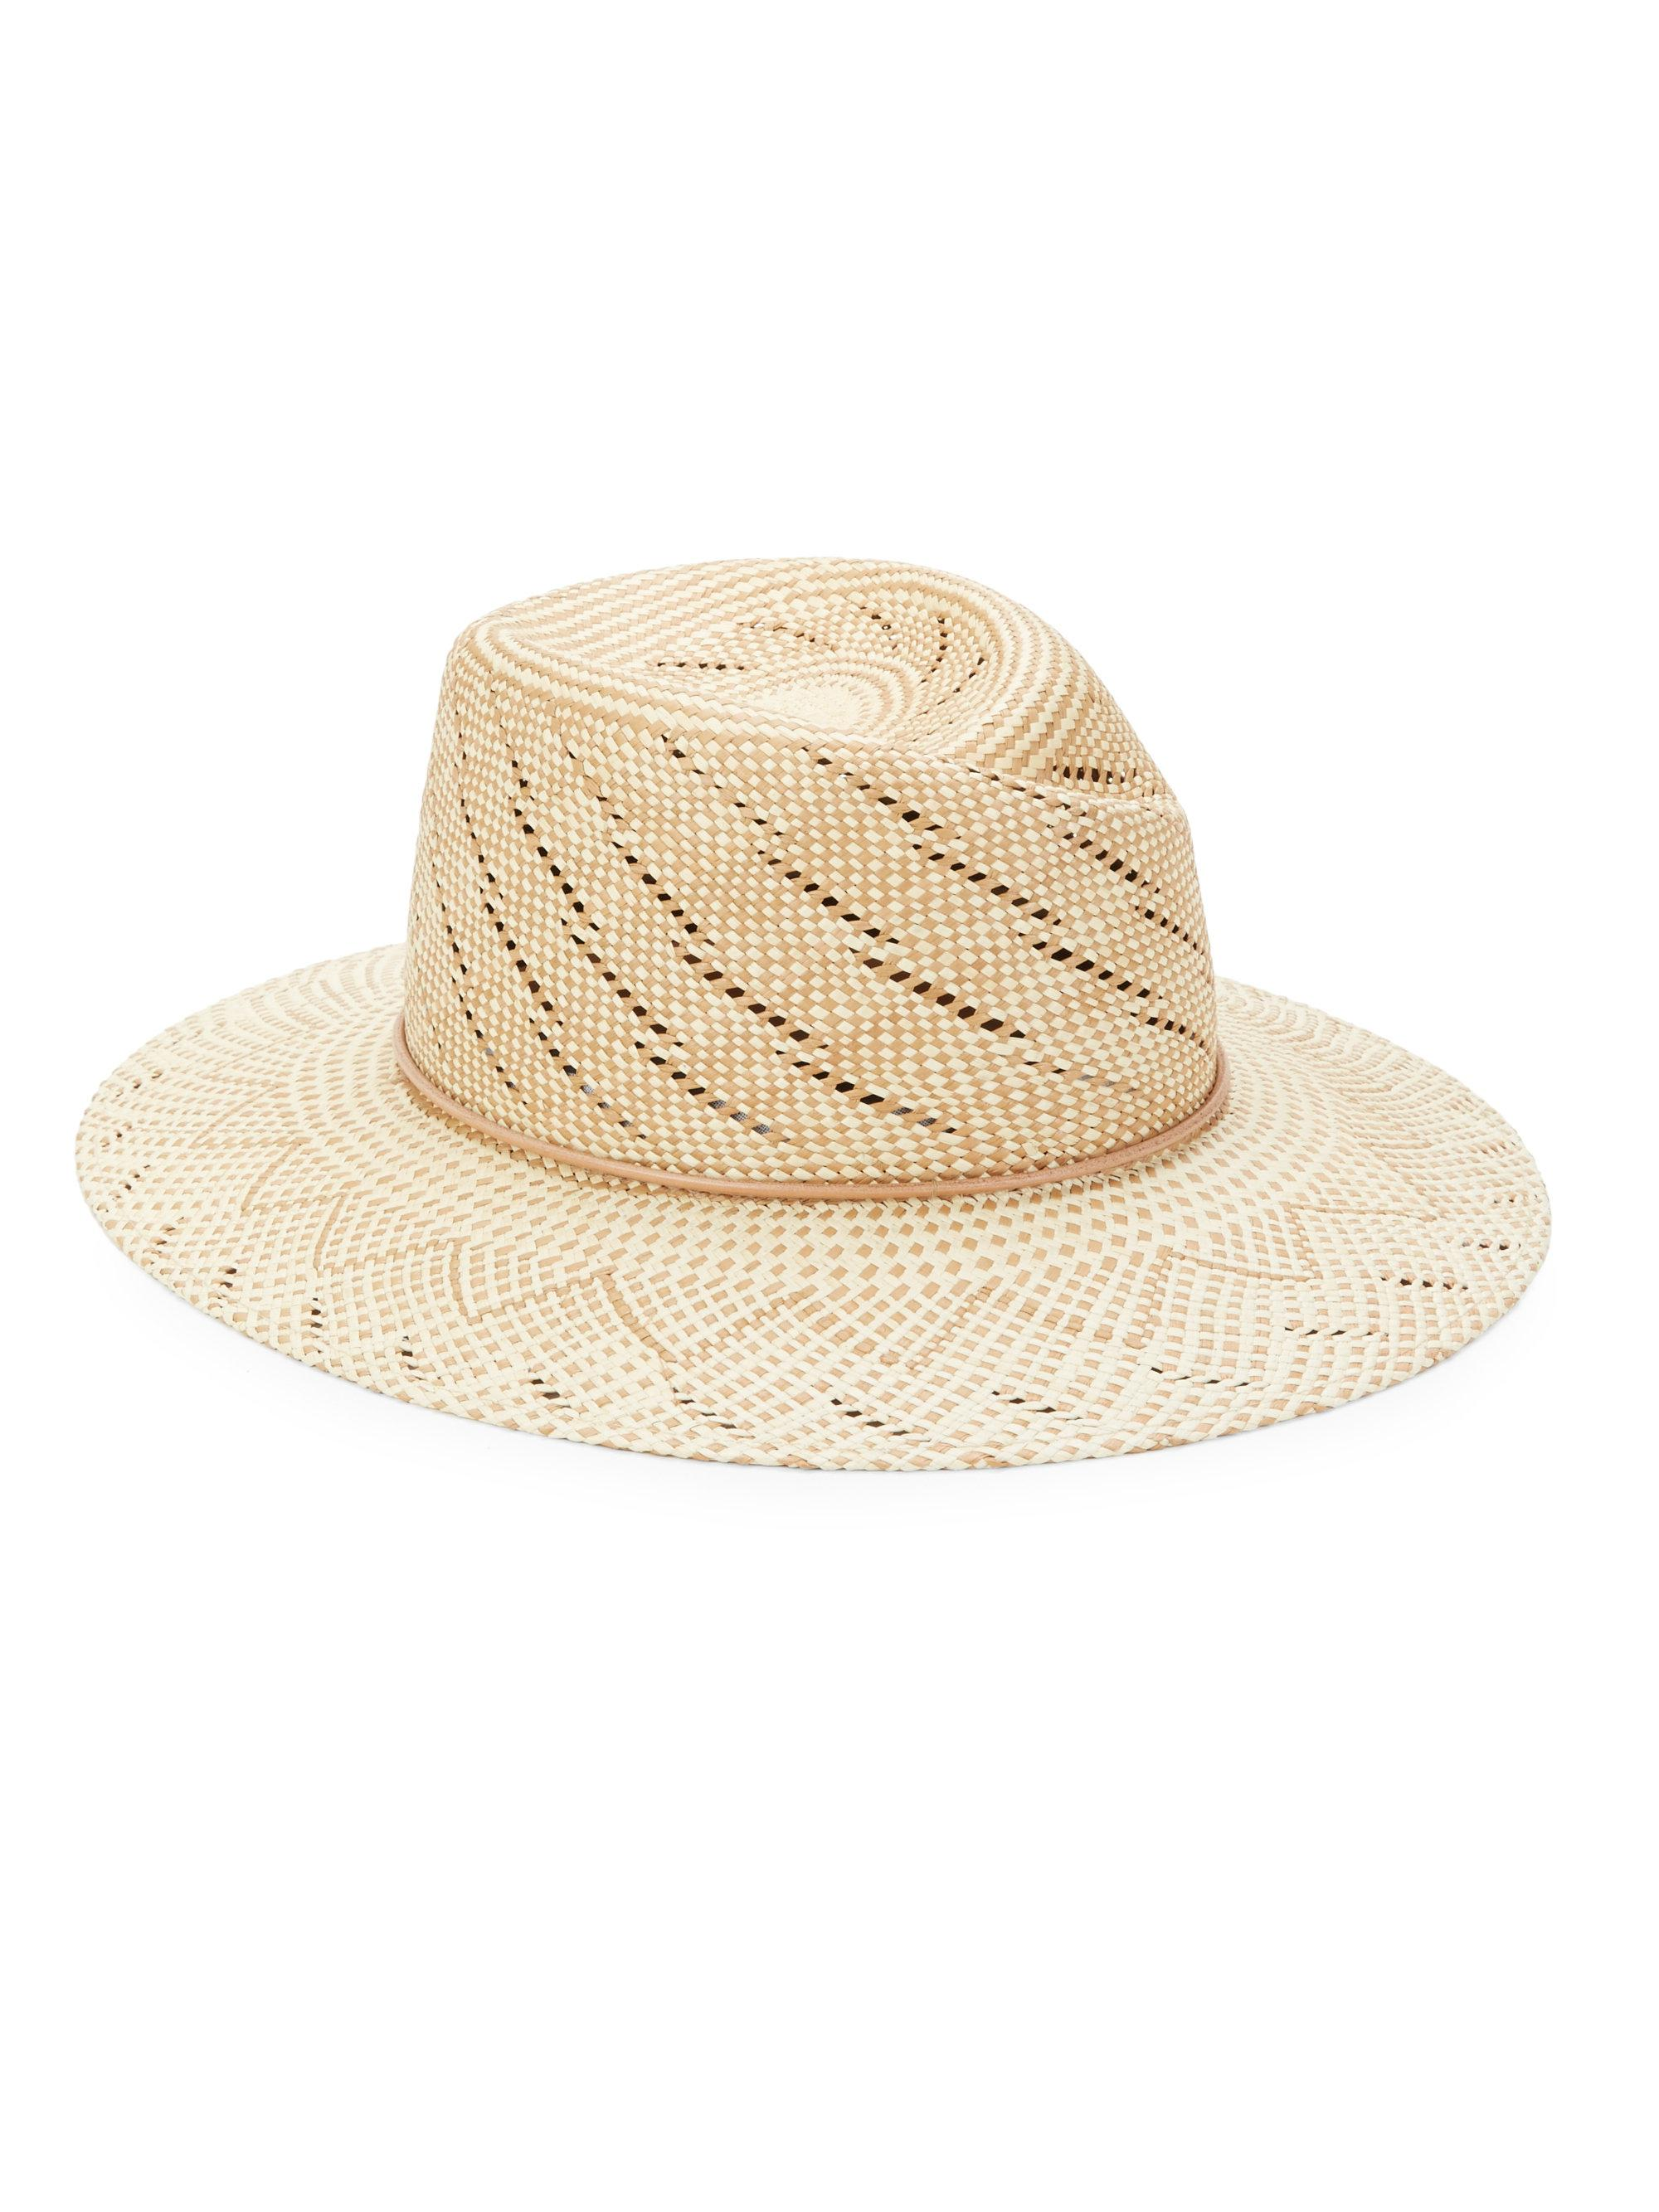 07bdbdf0a36 Rag   Bone Zoe Straw Hat in Natural - Lyst